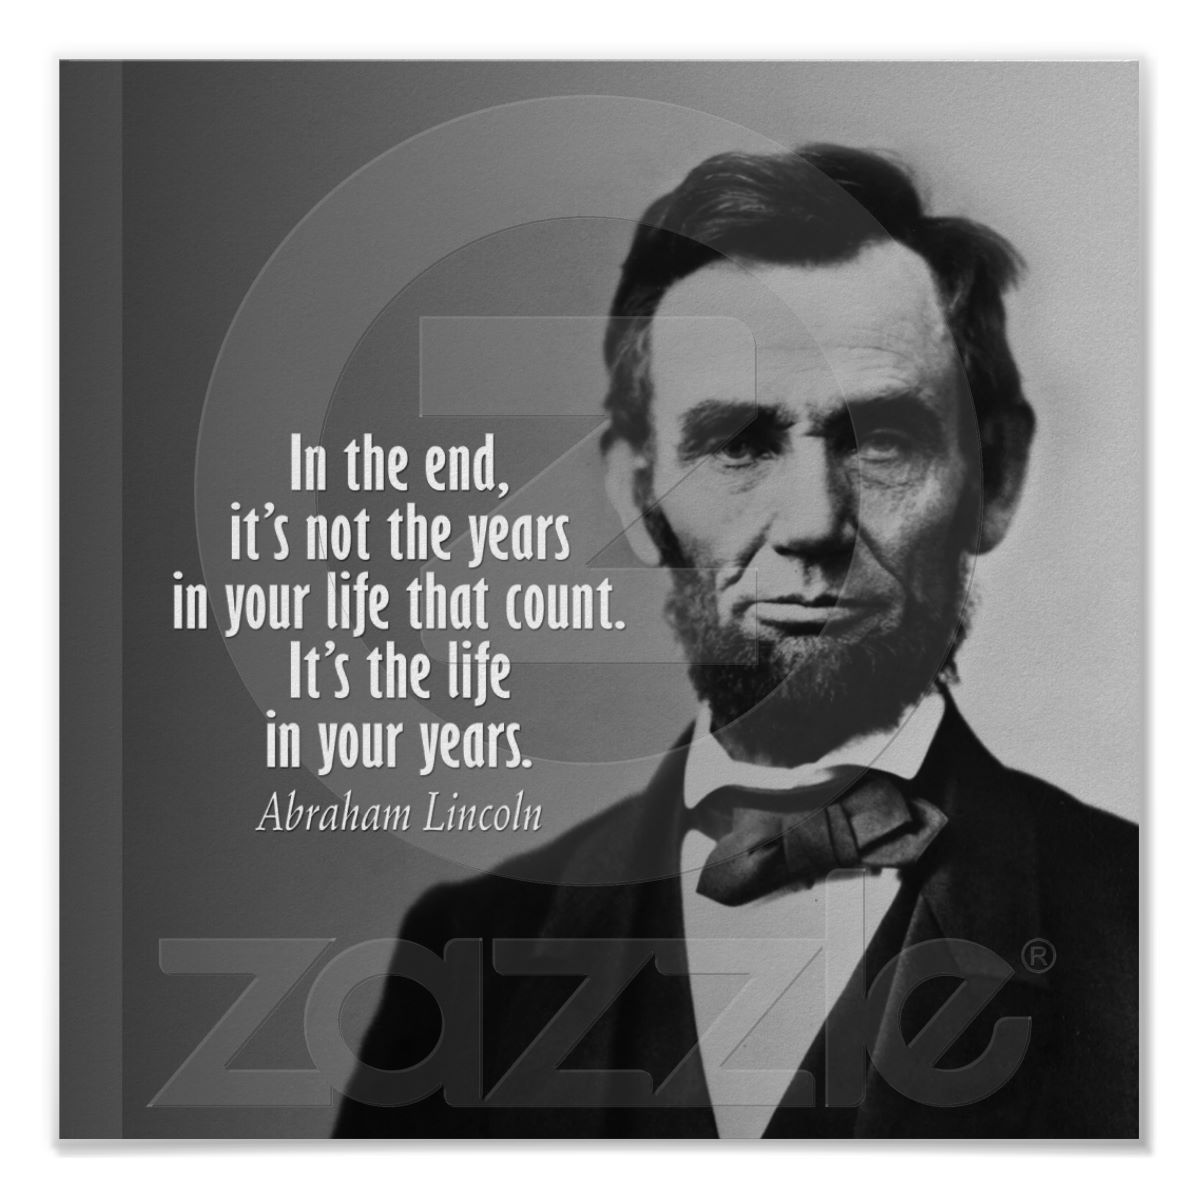 Abraham Lincoln Quote on Life Print from Zazzle.com